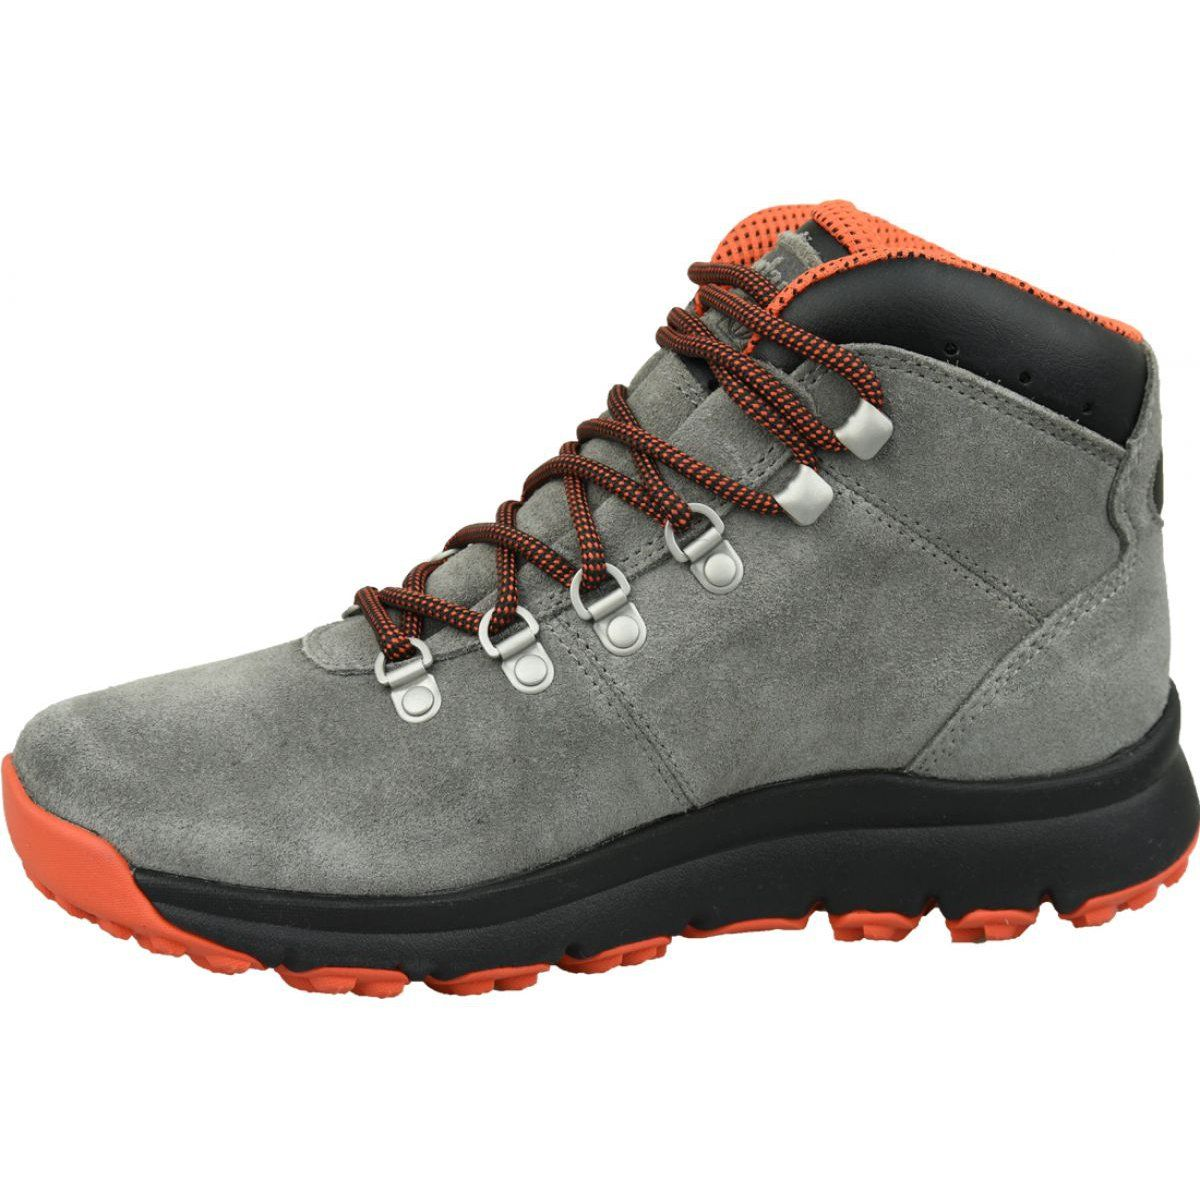 Buty Zimowe Timberland World Hiker Mid M A1z11 Szare Winter Shoes Sport Shoes Men Shoes